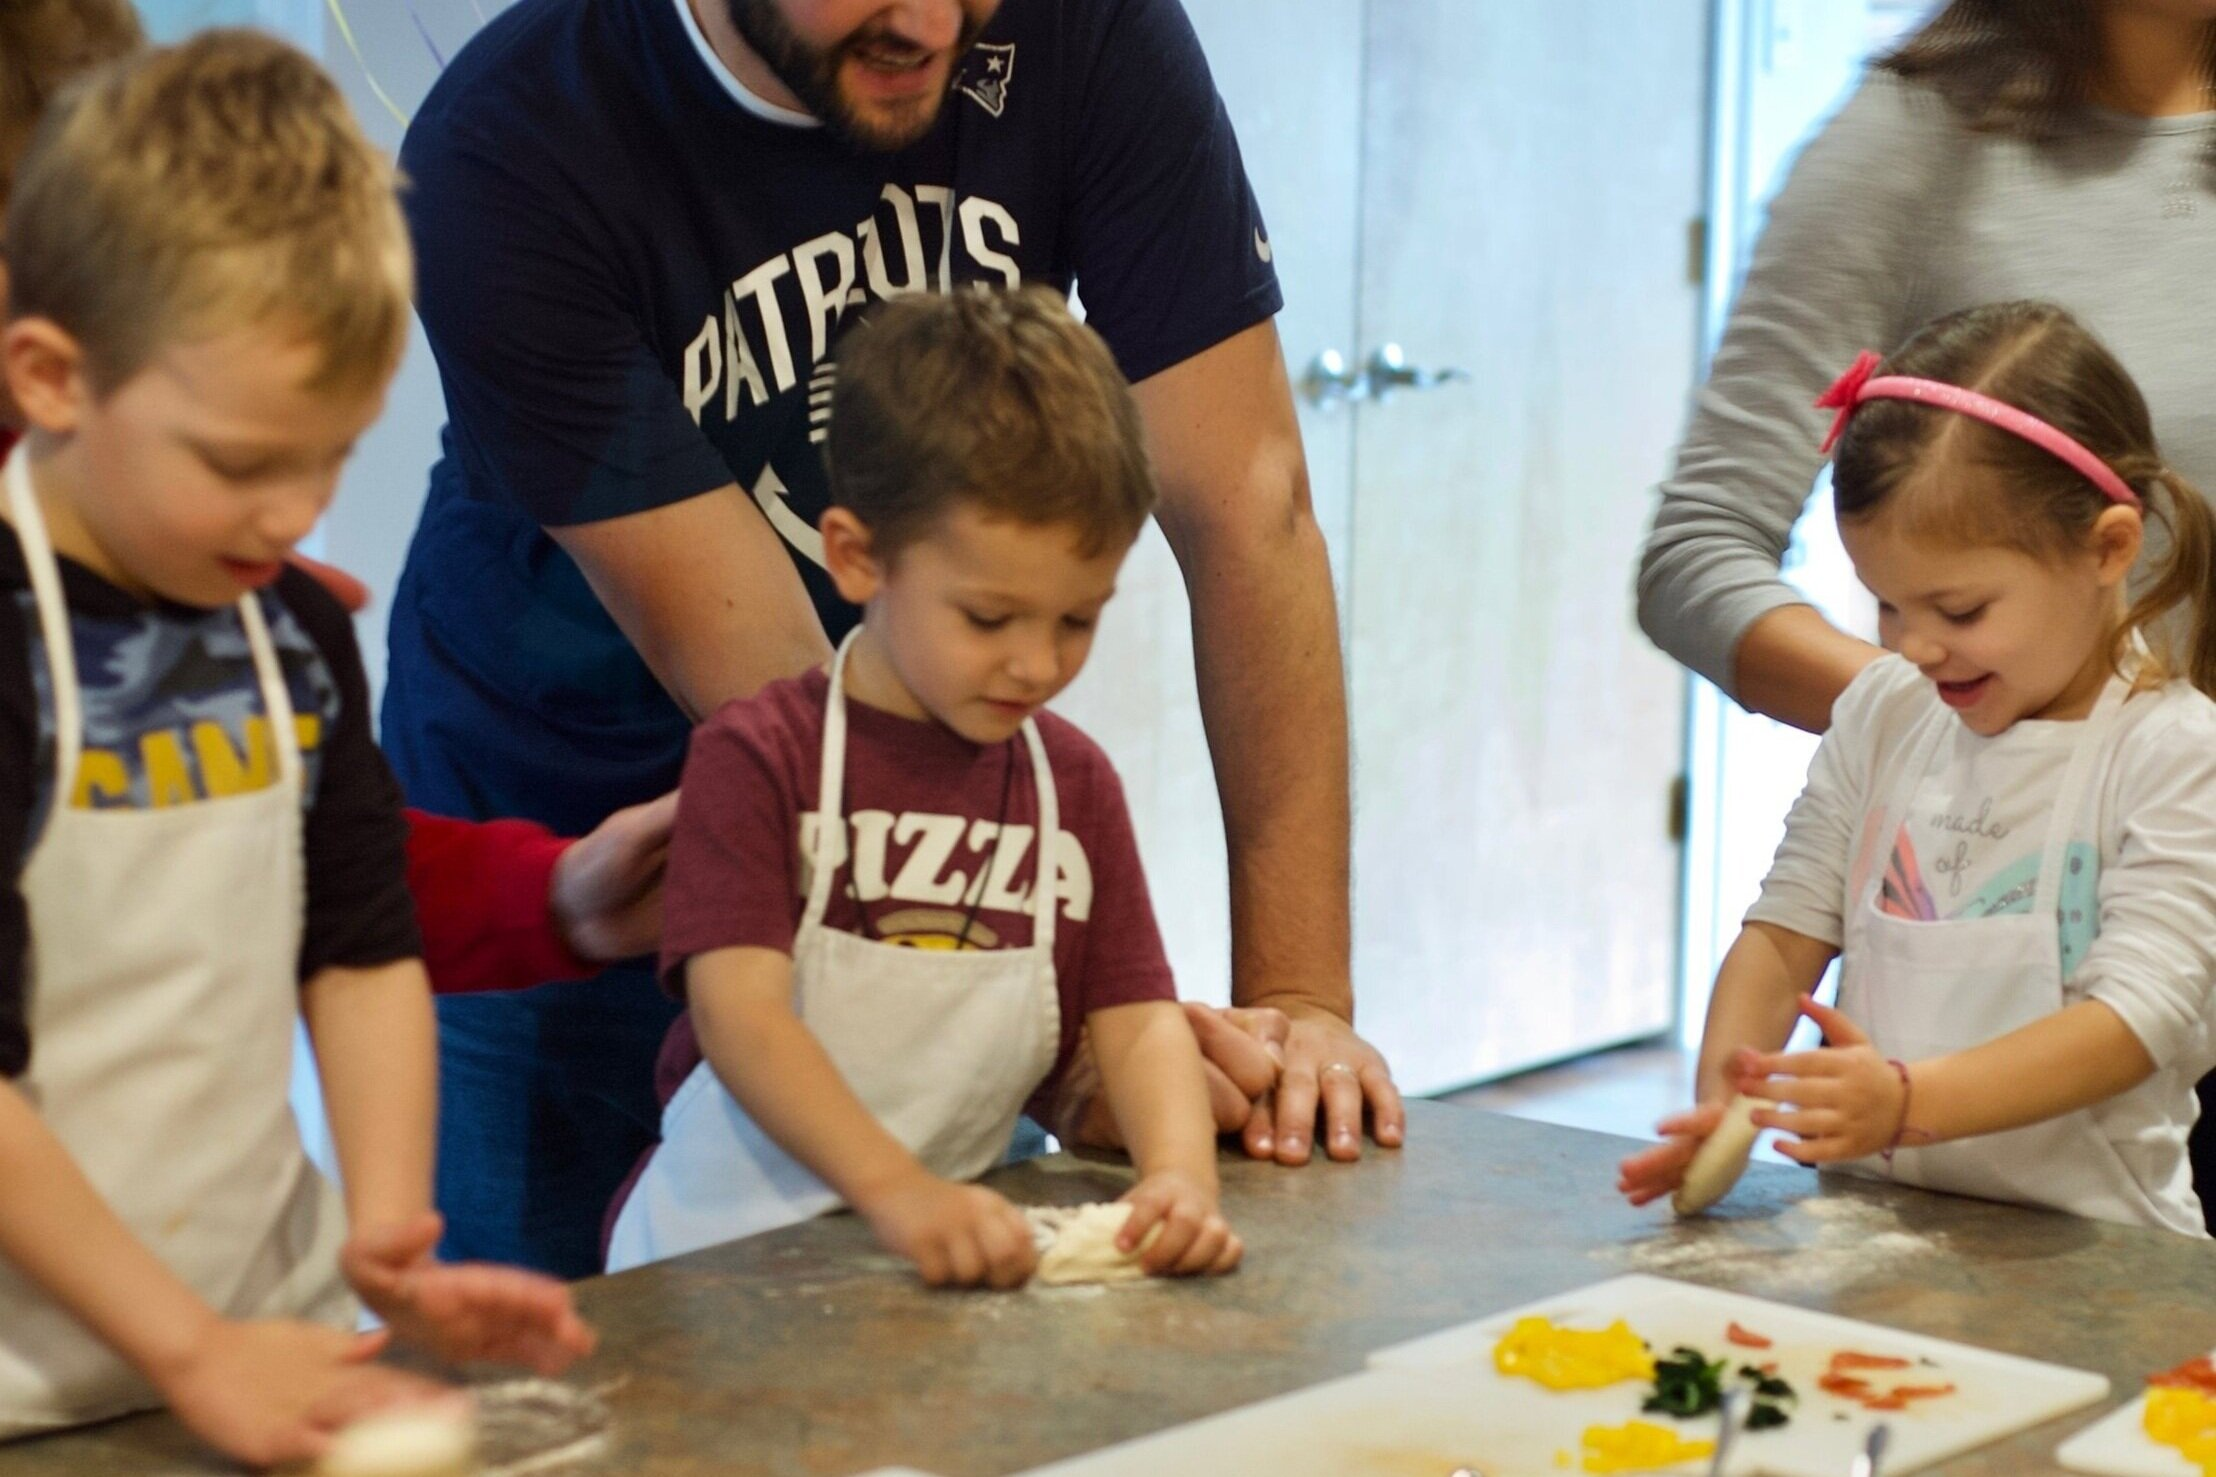 Make-Your-Own Pizza Birthday Party - Little chefs make personal pizzas, safely veggie-chopping, dough-rolling, & pizza-building.